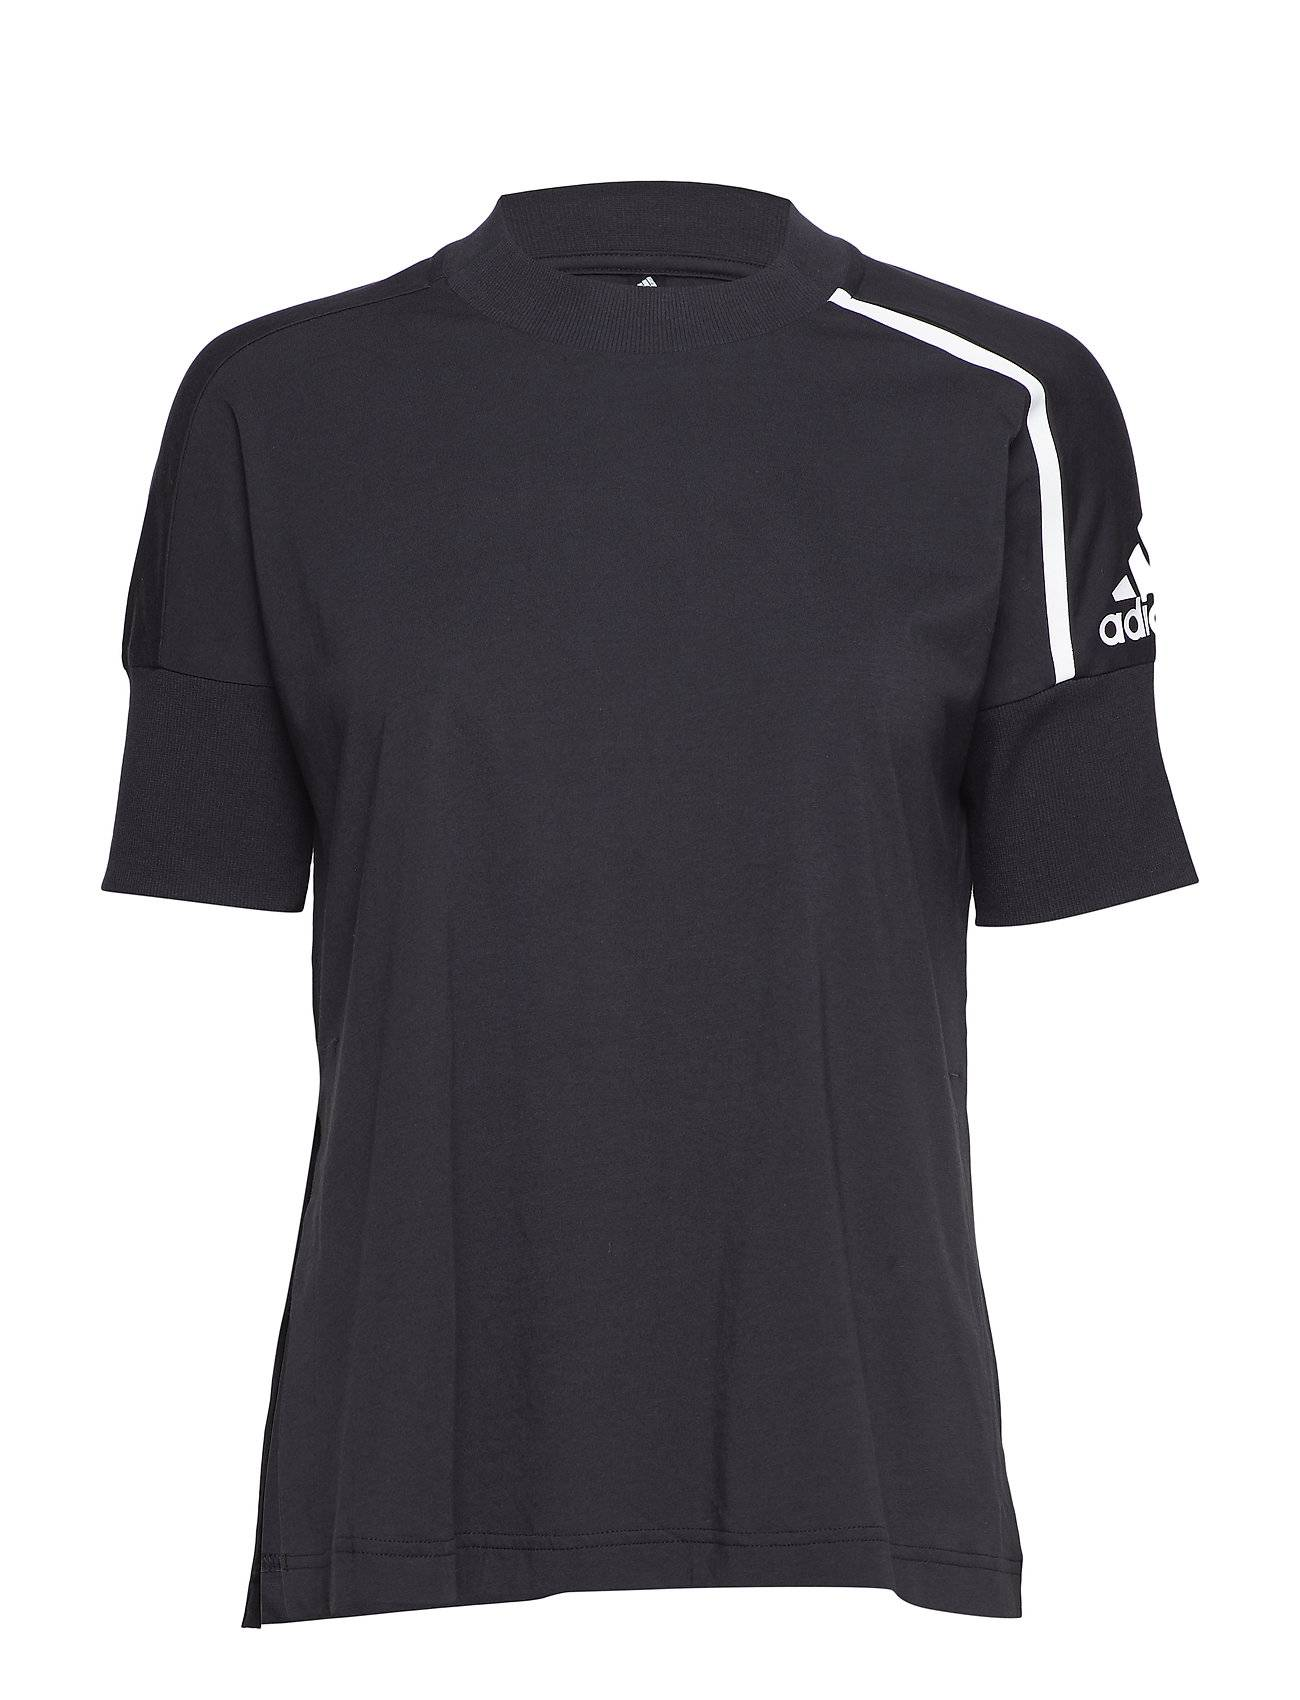 Image of adidas Performance W Zne Tee T-shirts & Tops Short-sleeved Musta